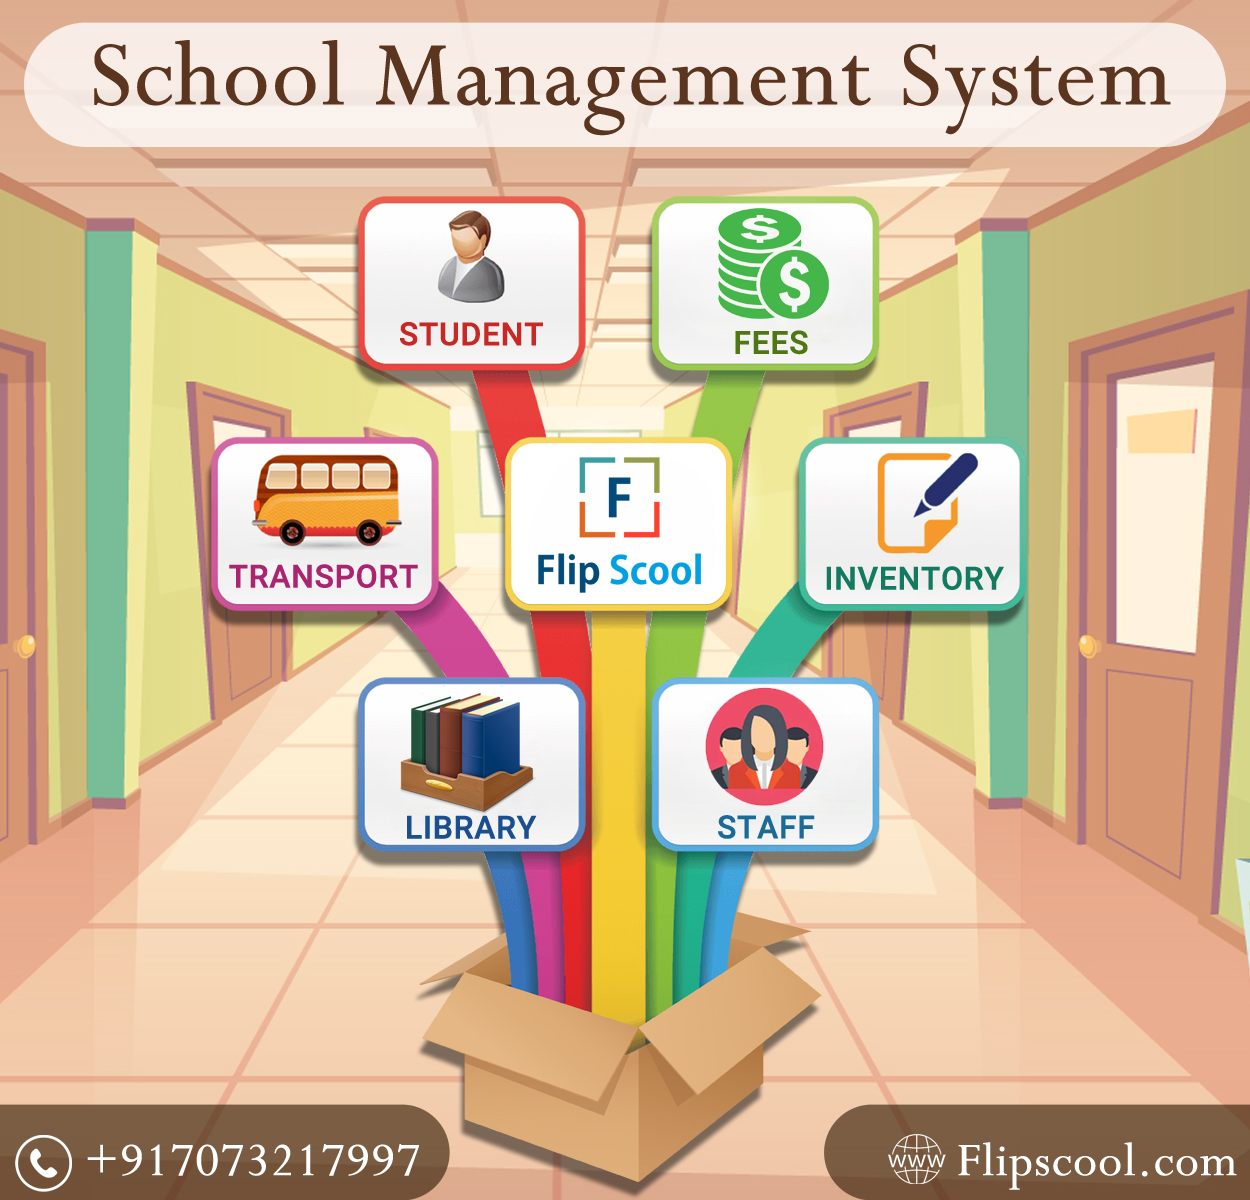 Best School Management System in India |Flipscool